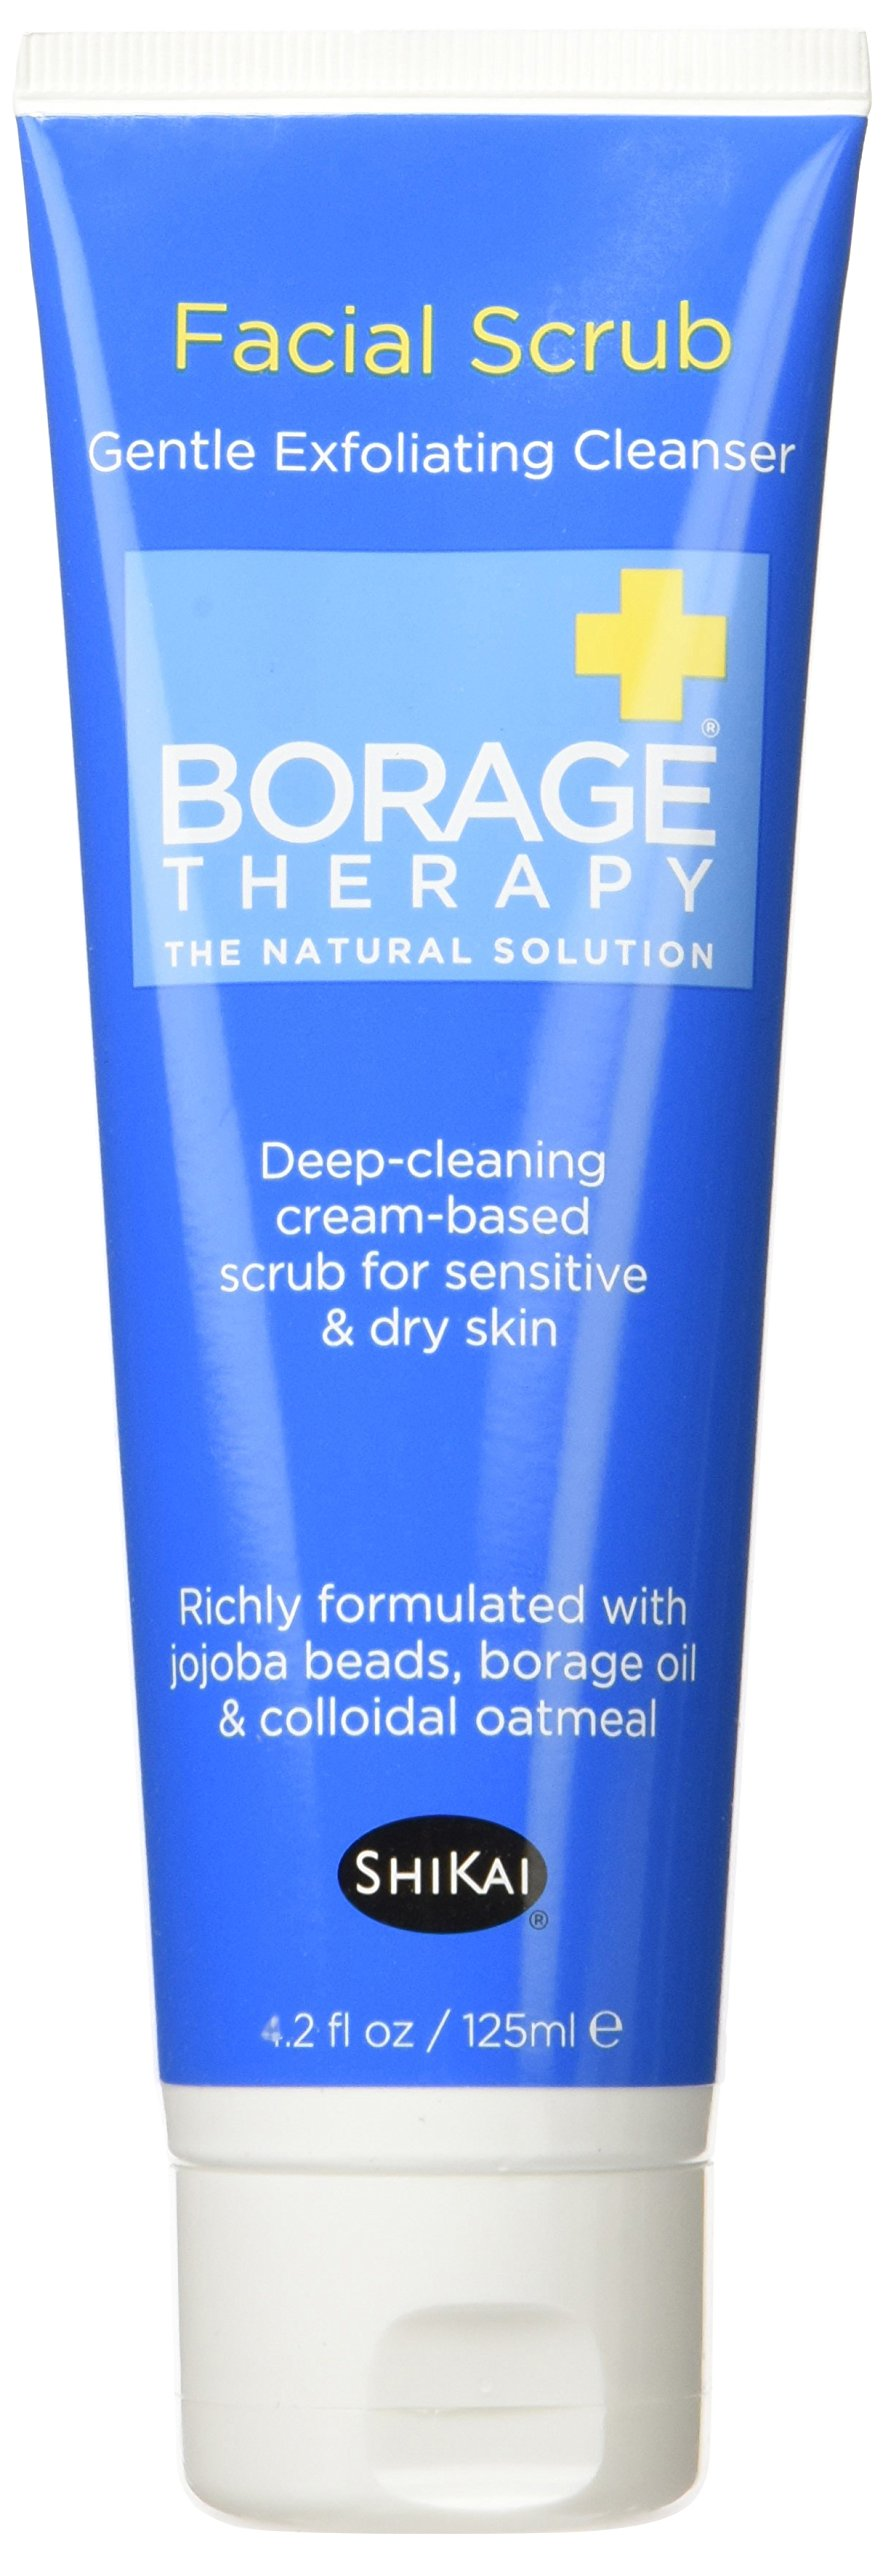 ShiKai Borage Therapy - Exfoliating Facial Scrub, Plant-Based Exfoliating Cleanser, Gently Clears Dirt, Oil & Dead Skin Cells, Borage Oil Repairs & Rebuilds Skin (Fragrance-Free, 4.2 Ounces)